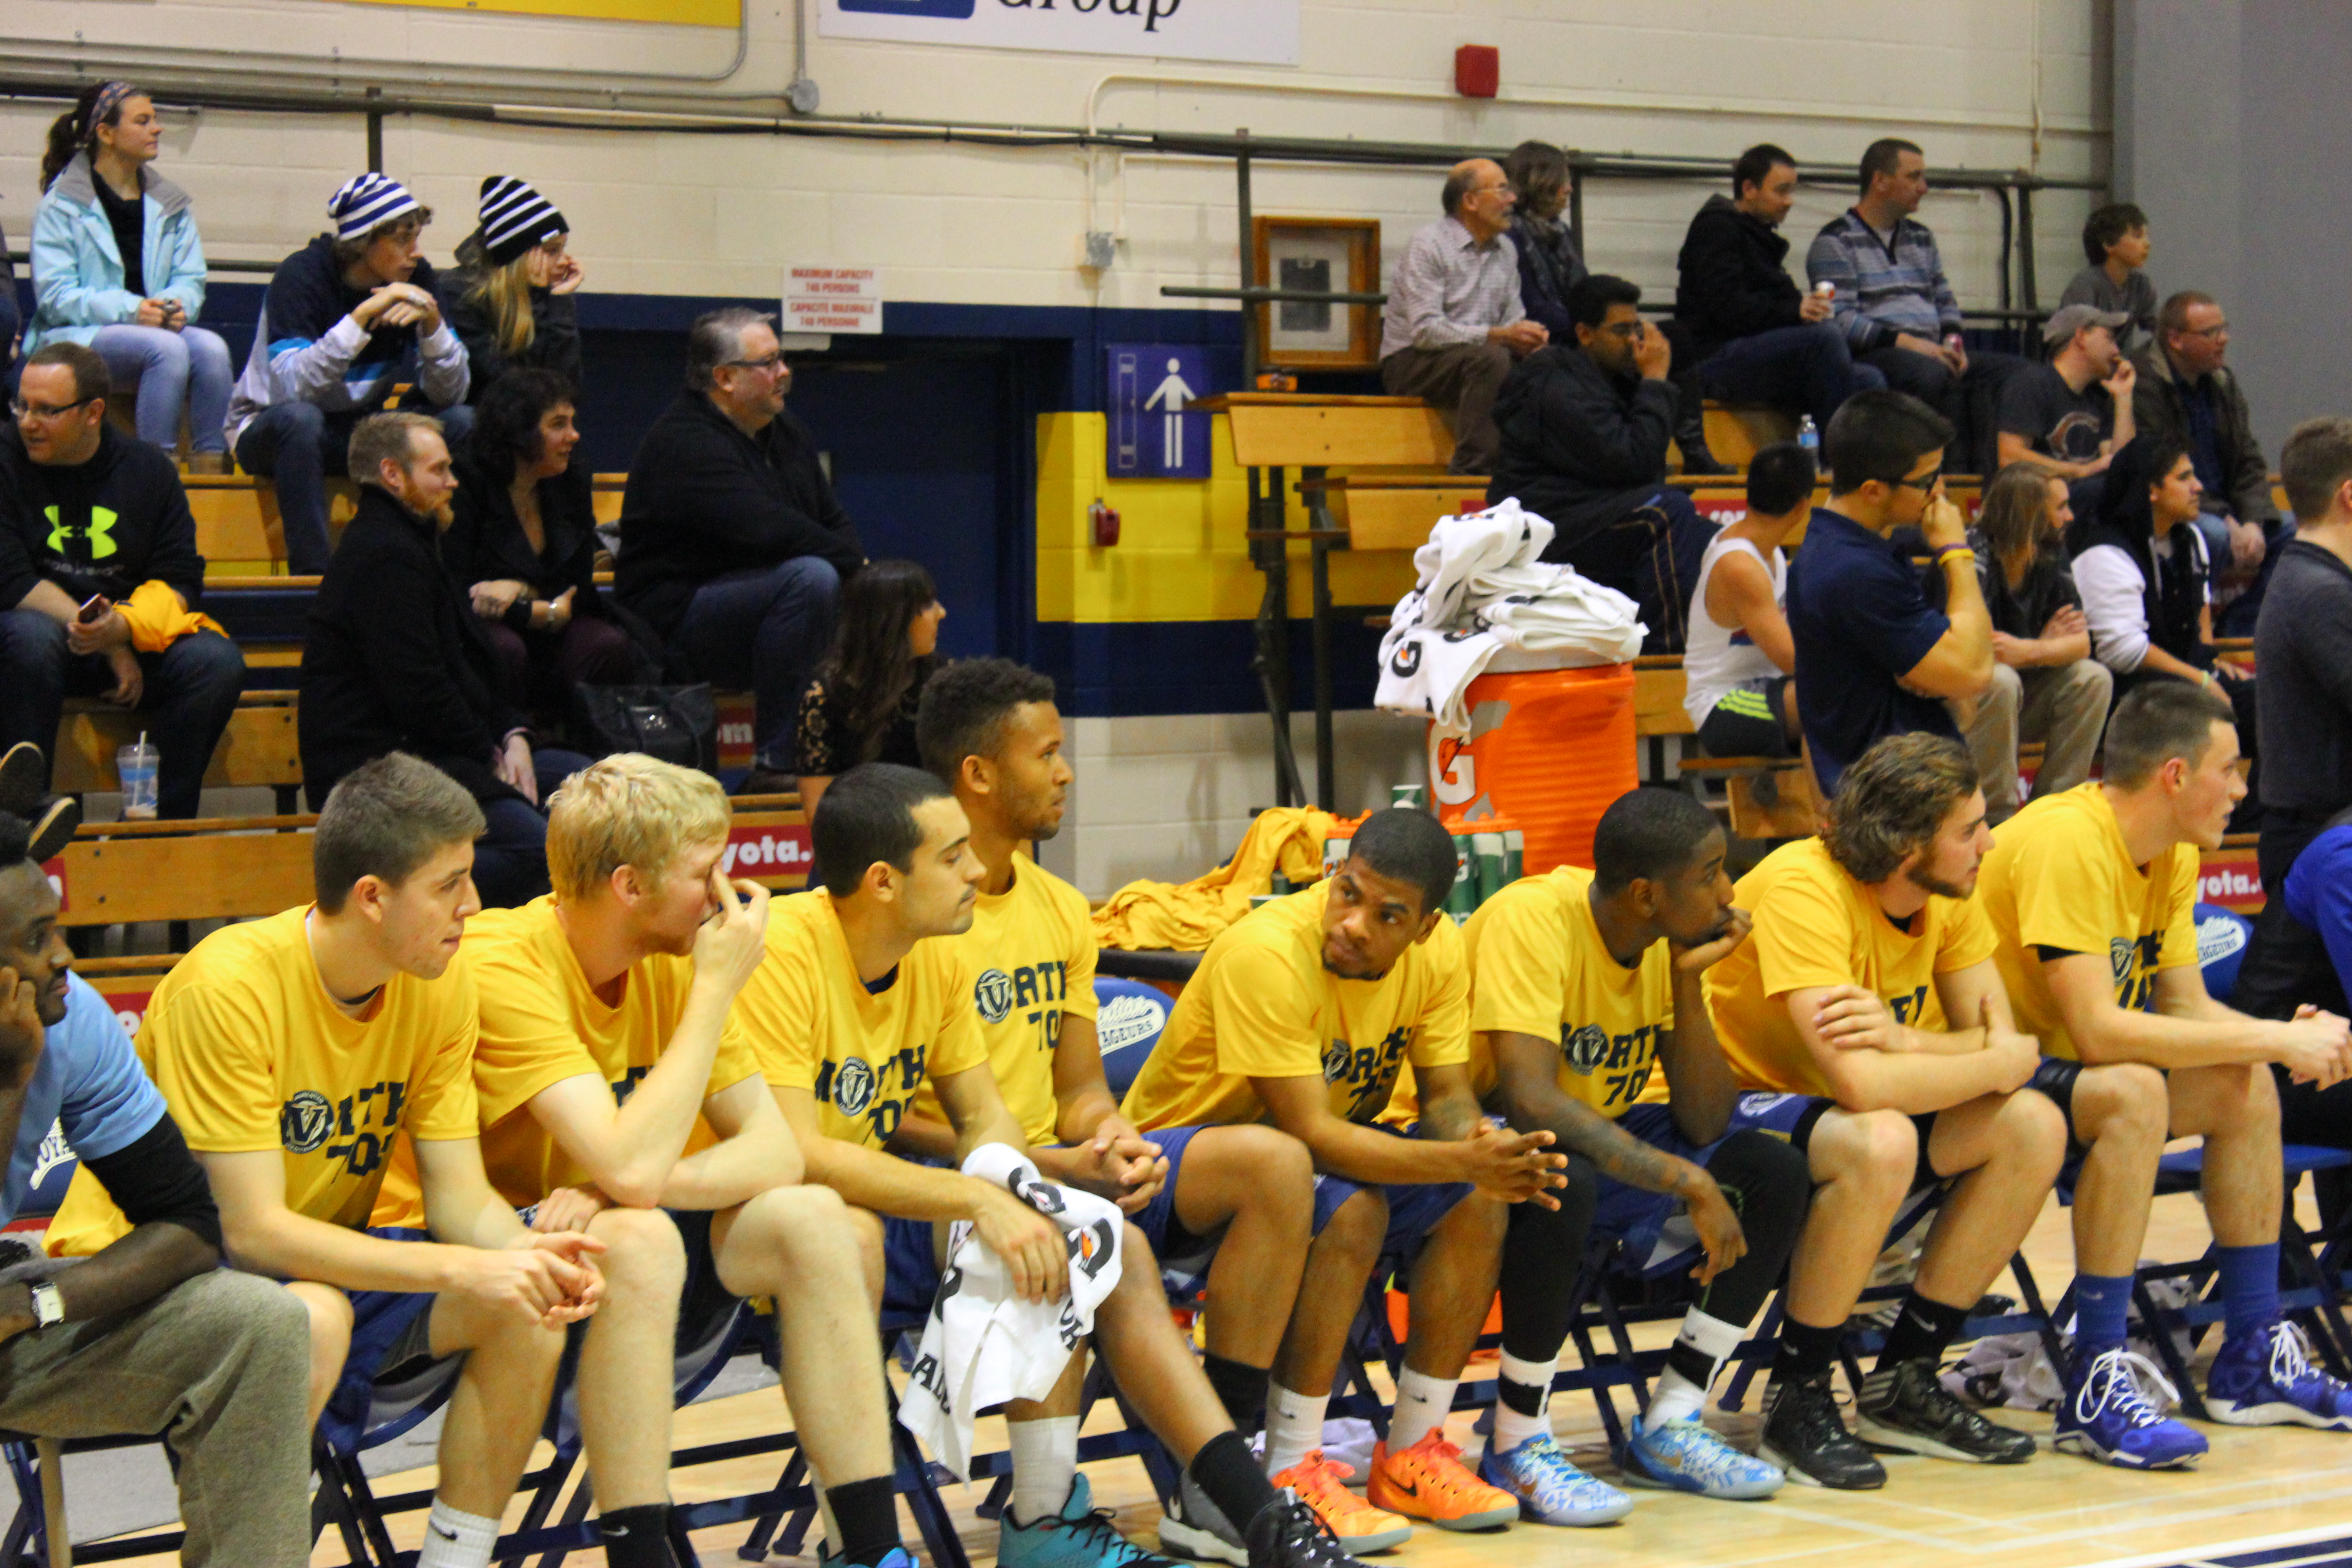 Members of the Laurentian men's basketball team watch during the game. Photo by Anthony Crozzoli